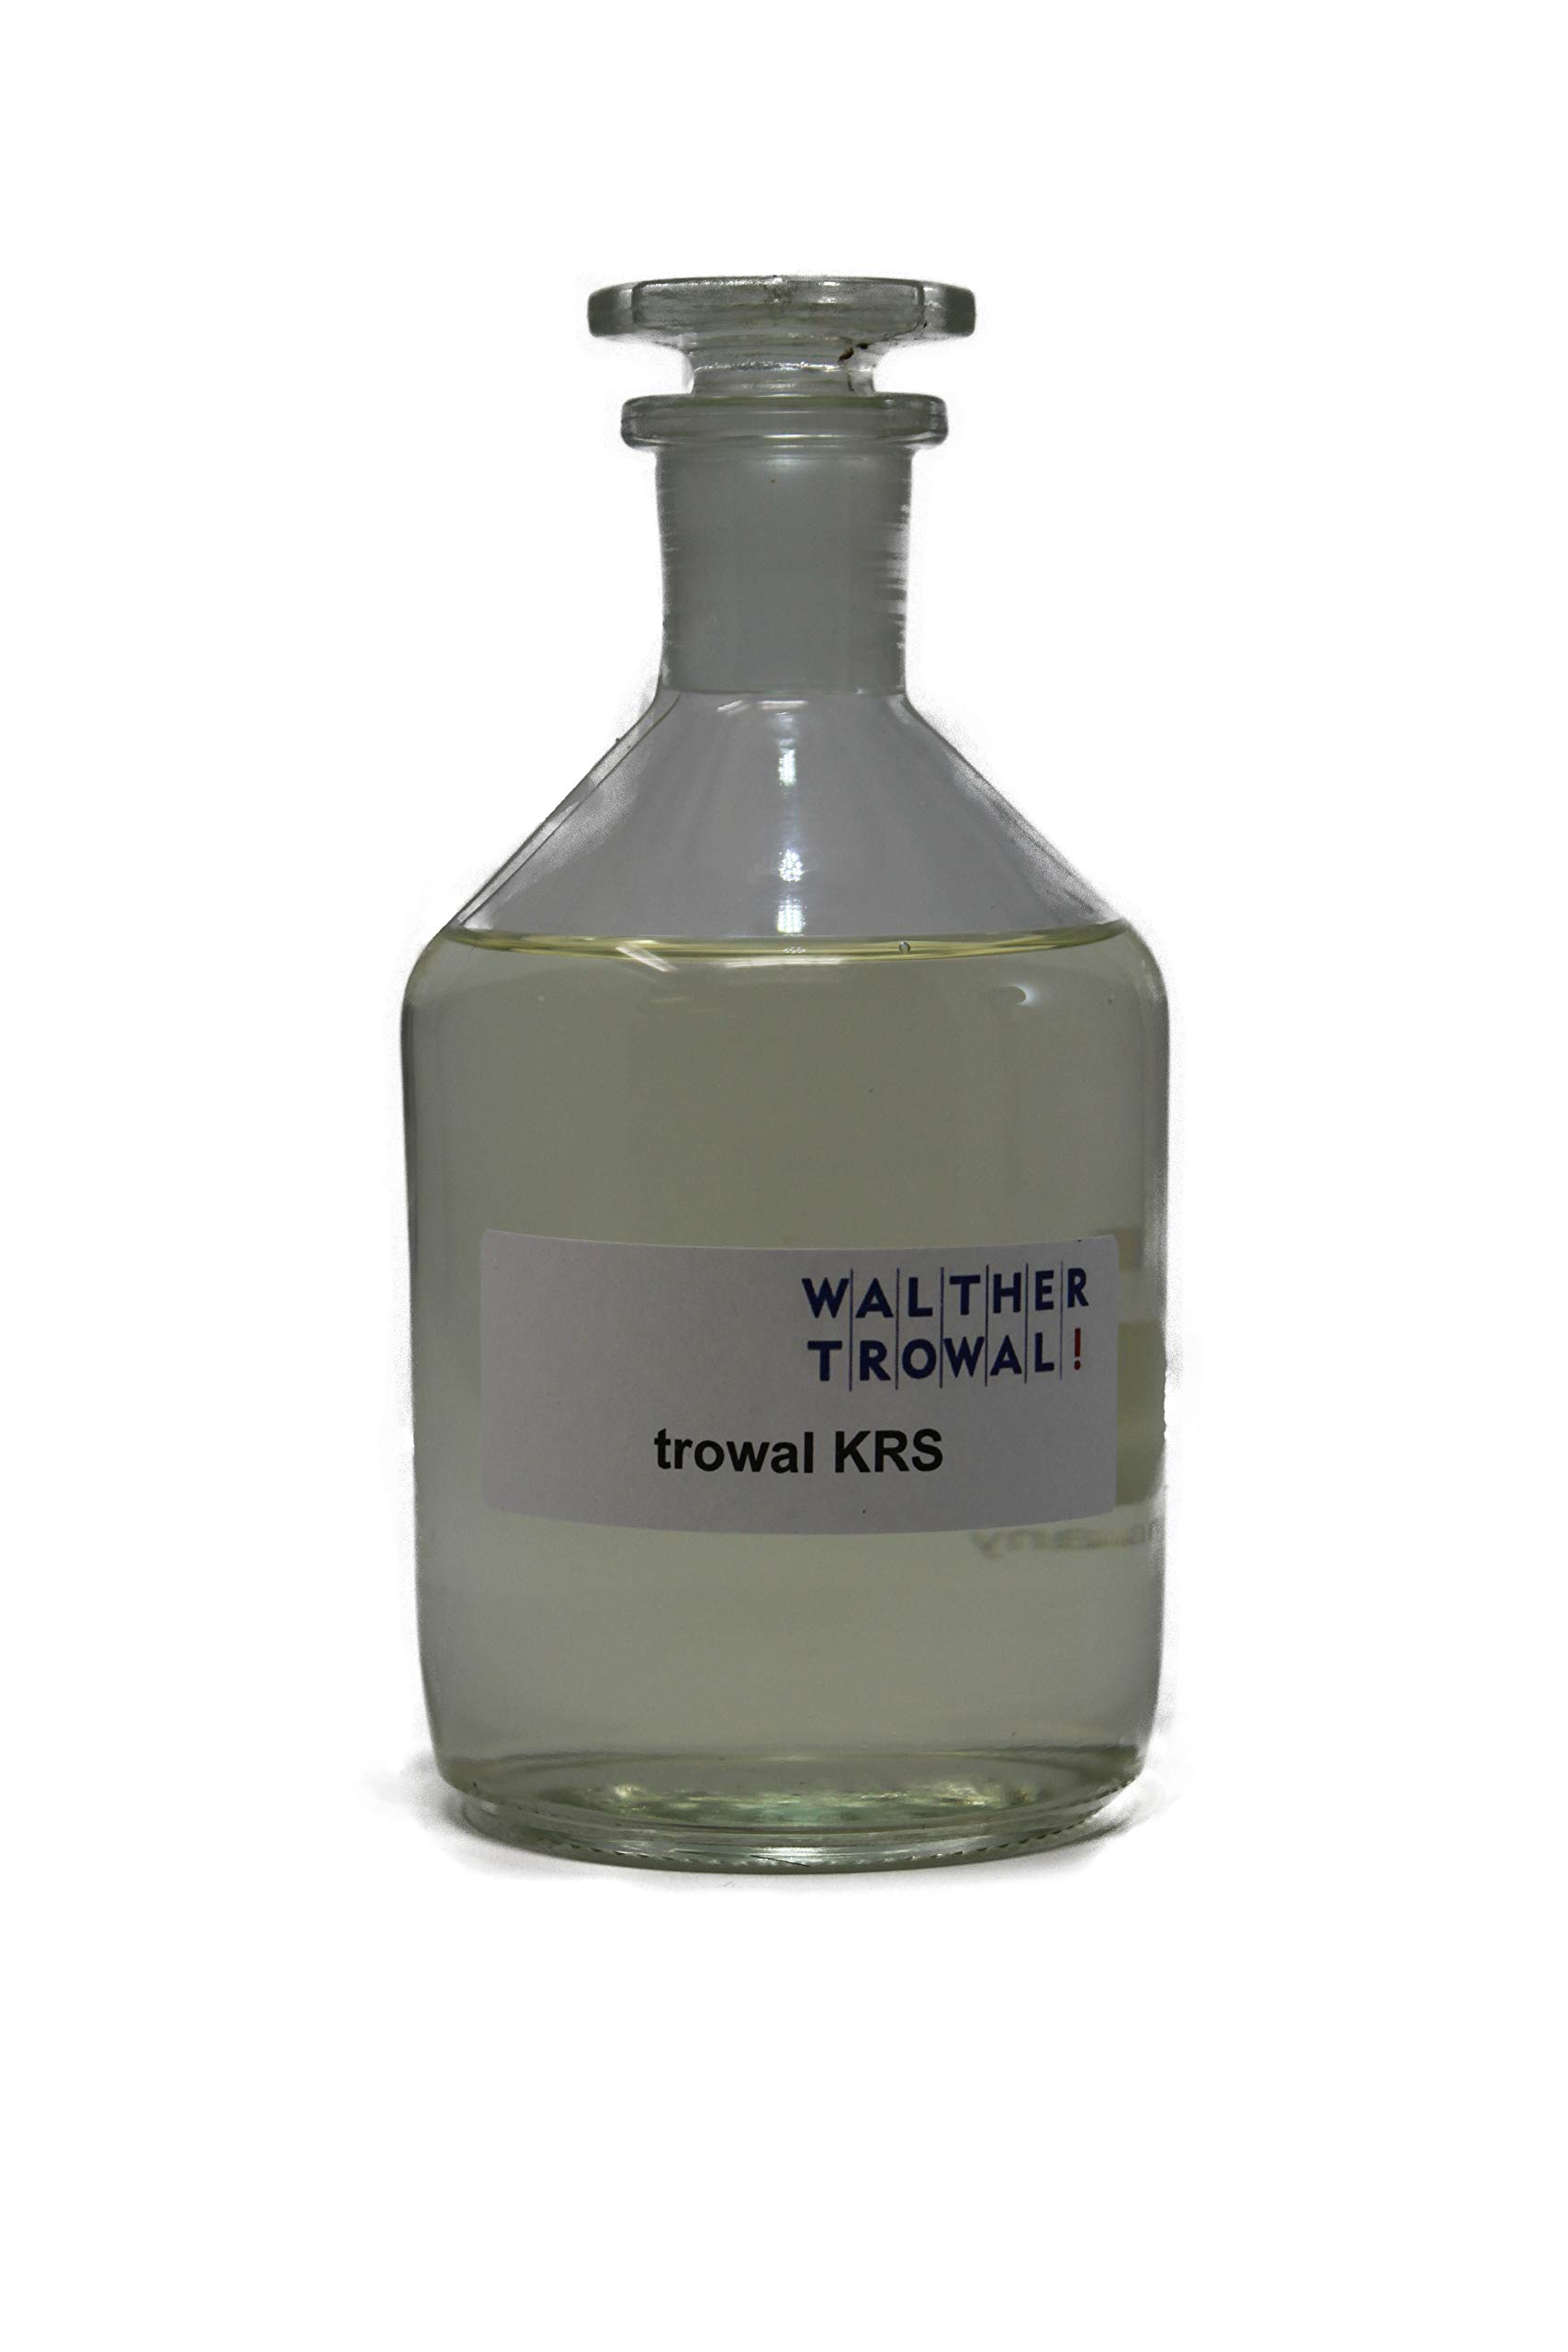 Walther Trowal KRS, Cleaning with Corrosion Protection Liquid Compound, 25 KG Container